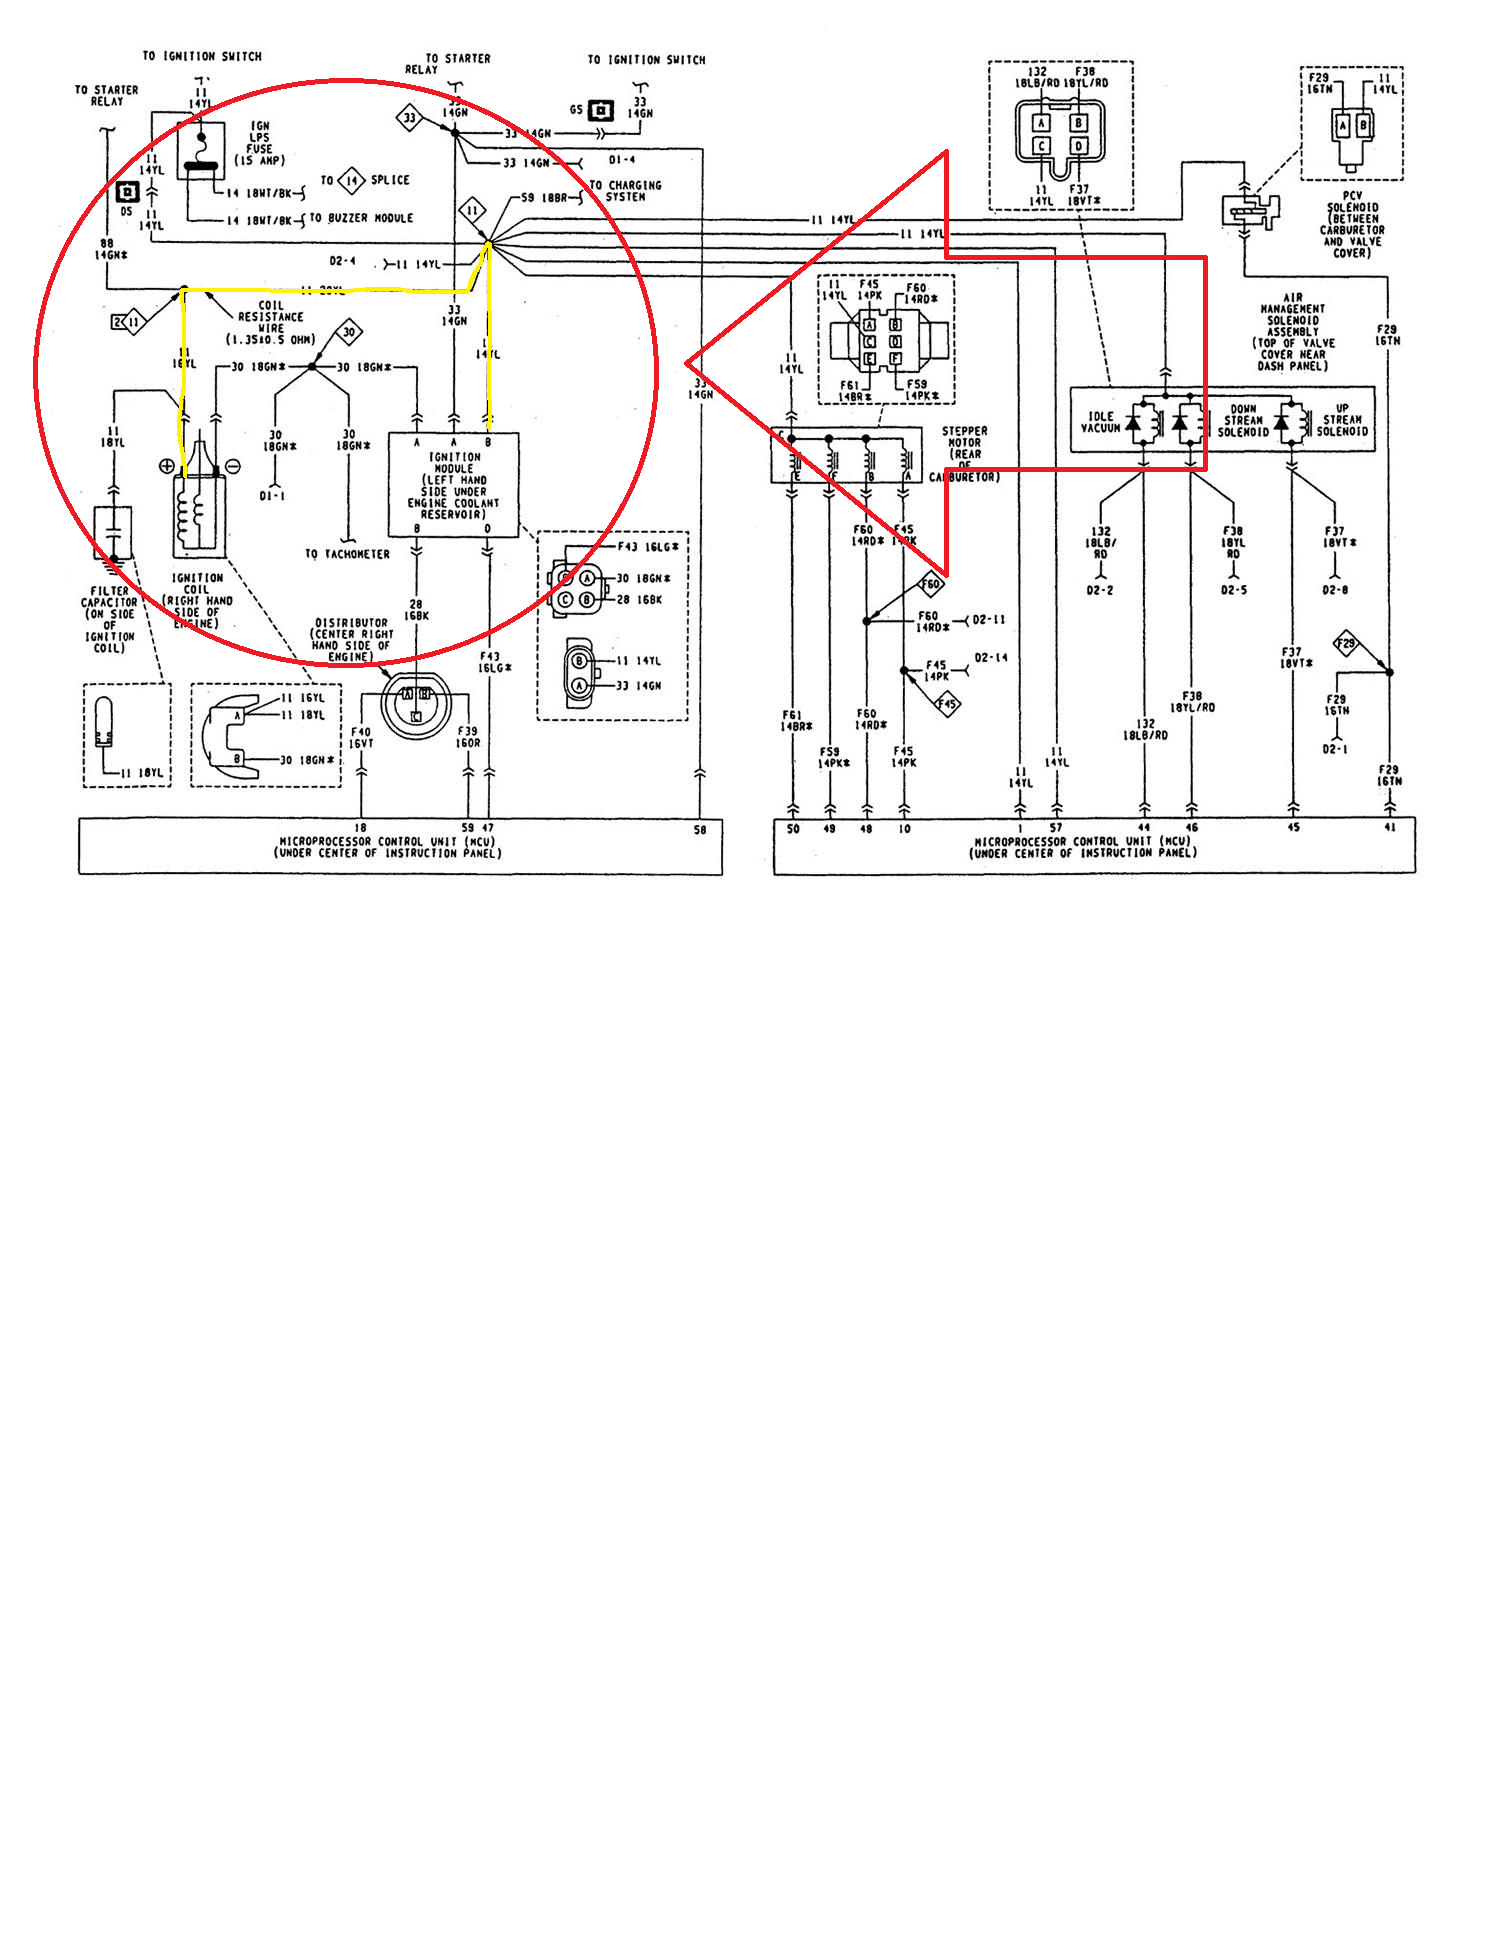 [DIAGRAM_38DE]  FA58 1990 Jeep Wrangler Ignition Wiring Diagram | Wiring Library | 1990 Jeep Wrangler Starting System Wiring Diagram |  | Wiring Library